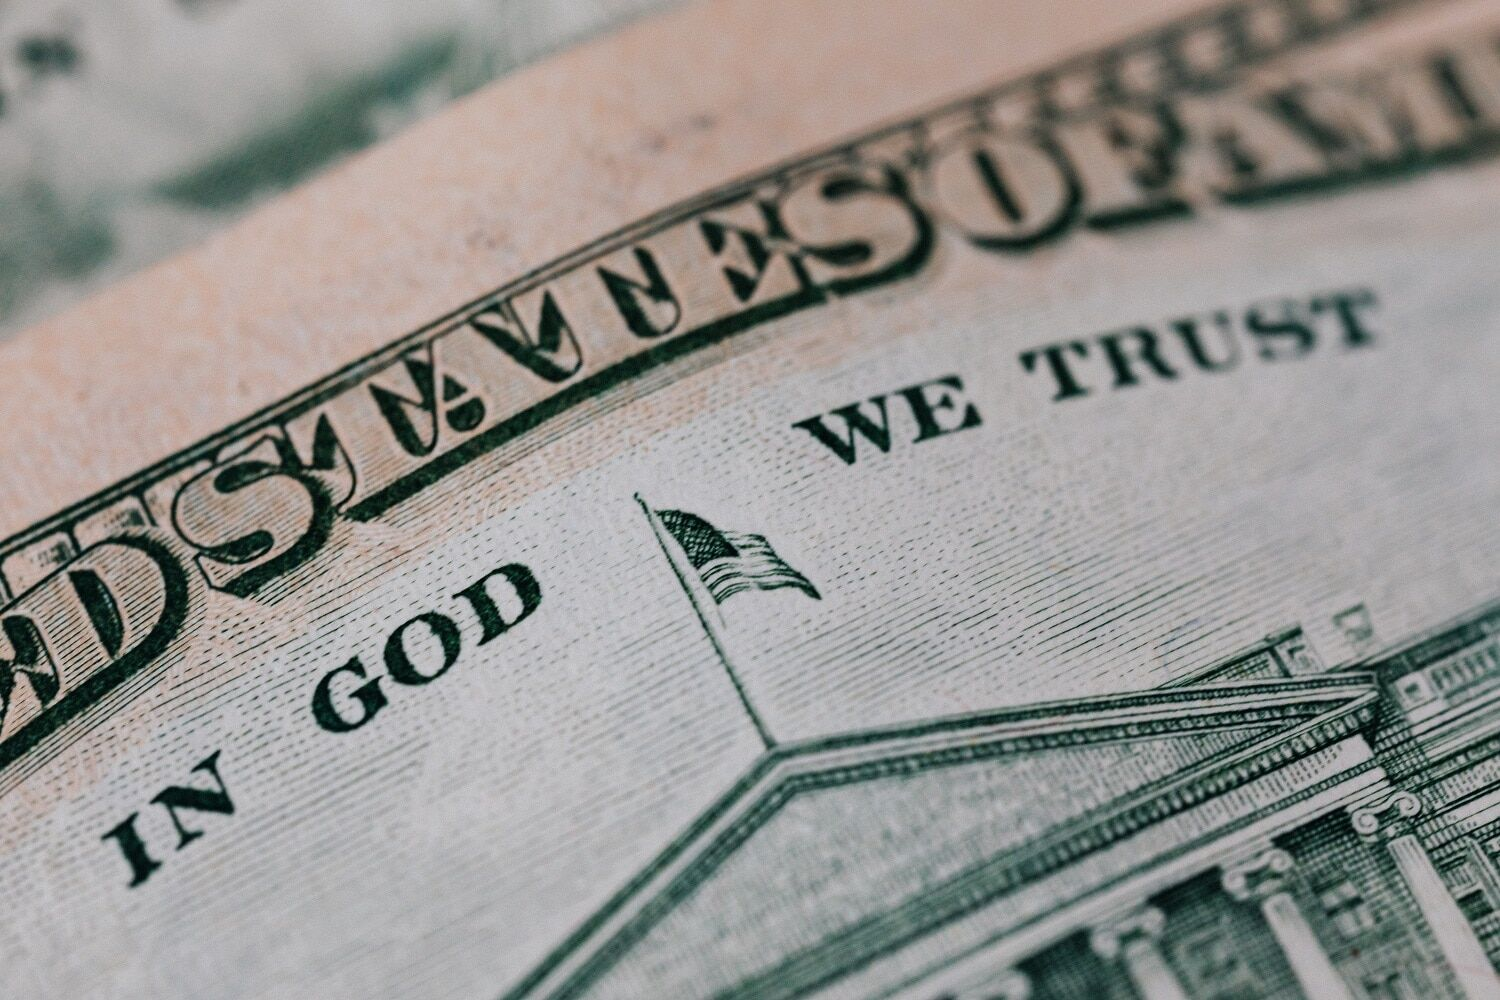 facts about money in god we trust